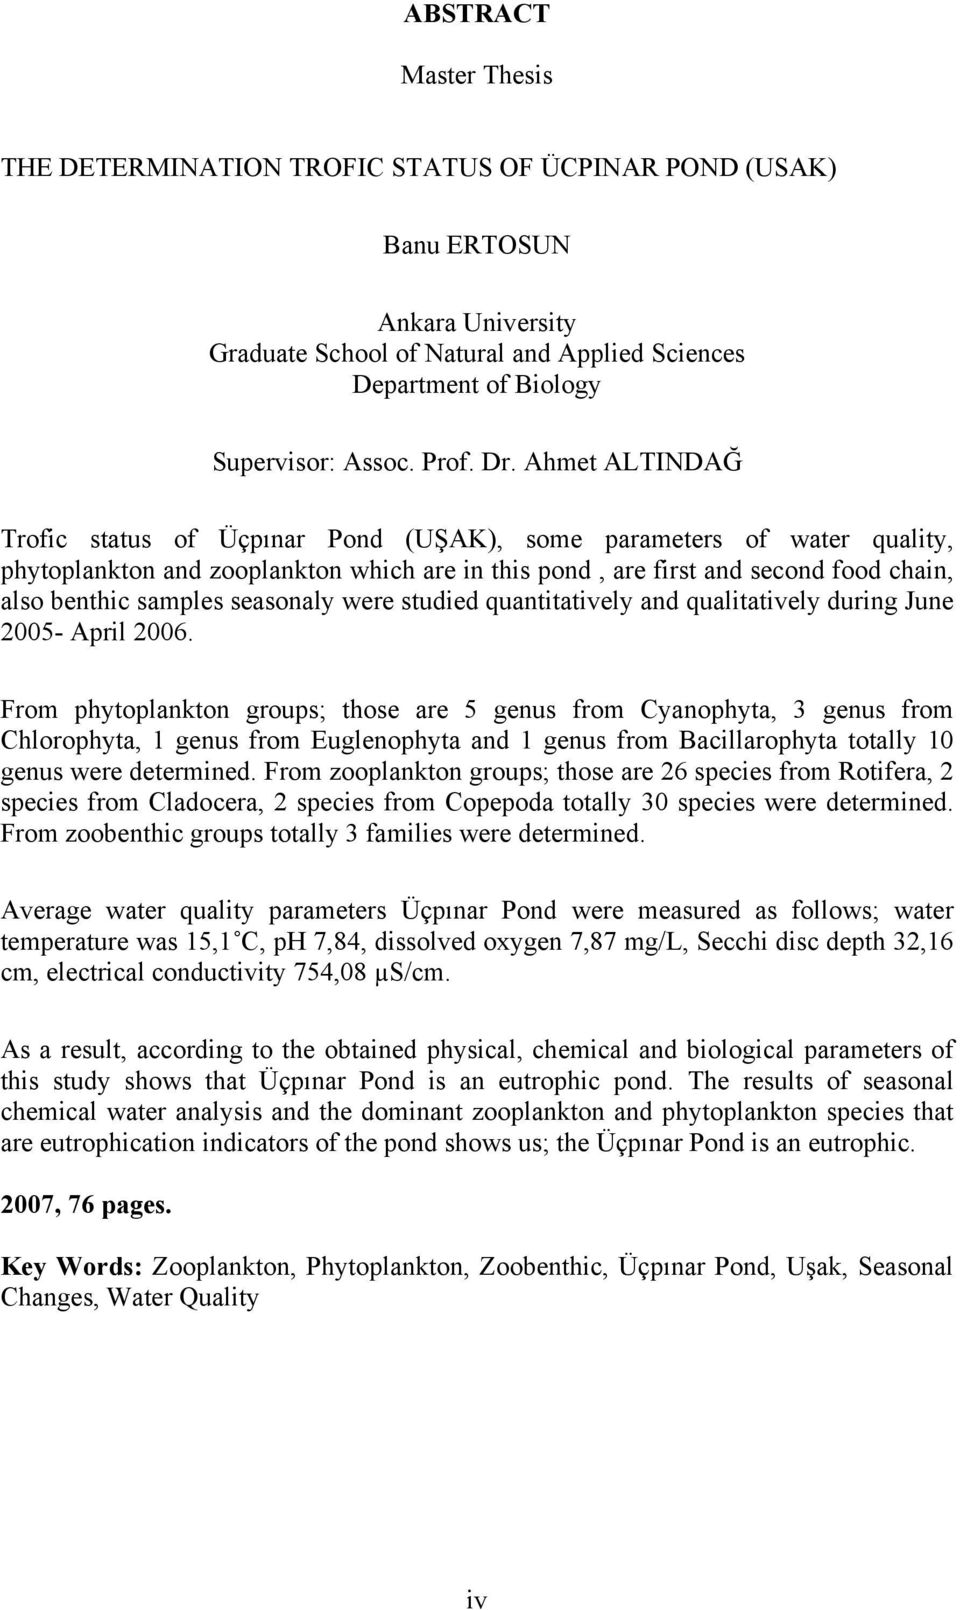 Ahmet ALTINDAĞ Trofic status of Üçpınar Pond (UŞAK), some parameters of water quality, phytoplankton and zooplankton which are in this pond, are first and second food chain, also benthic samples